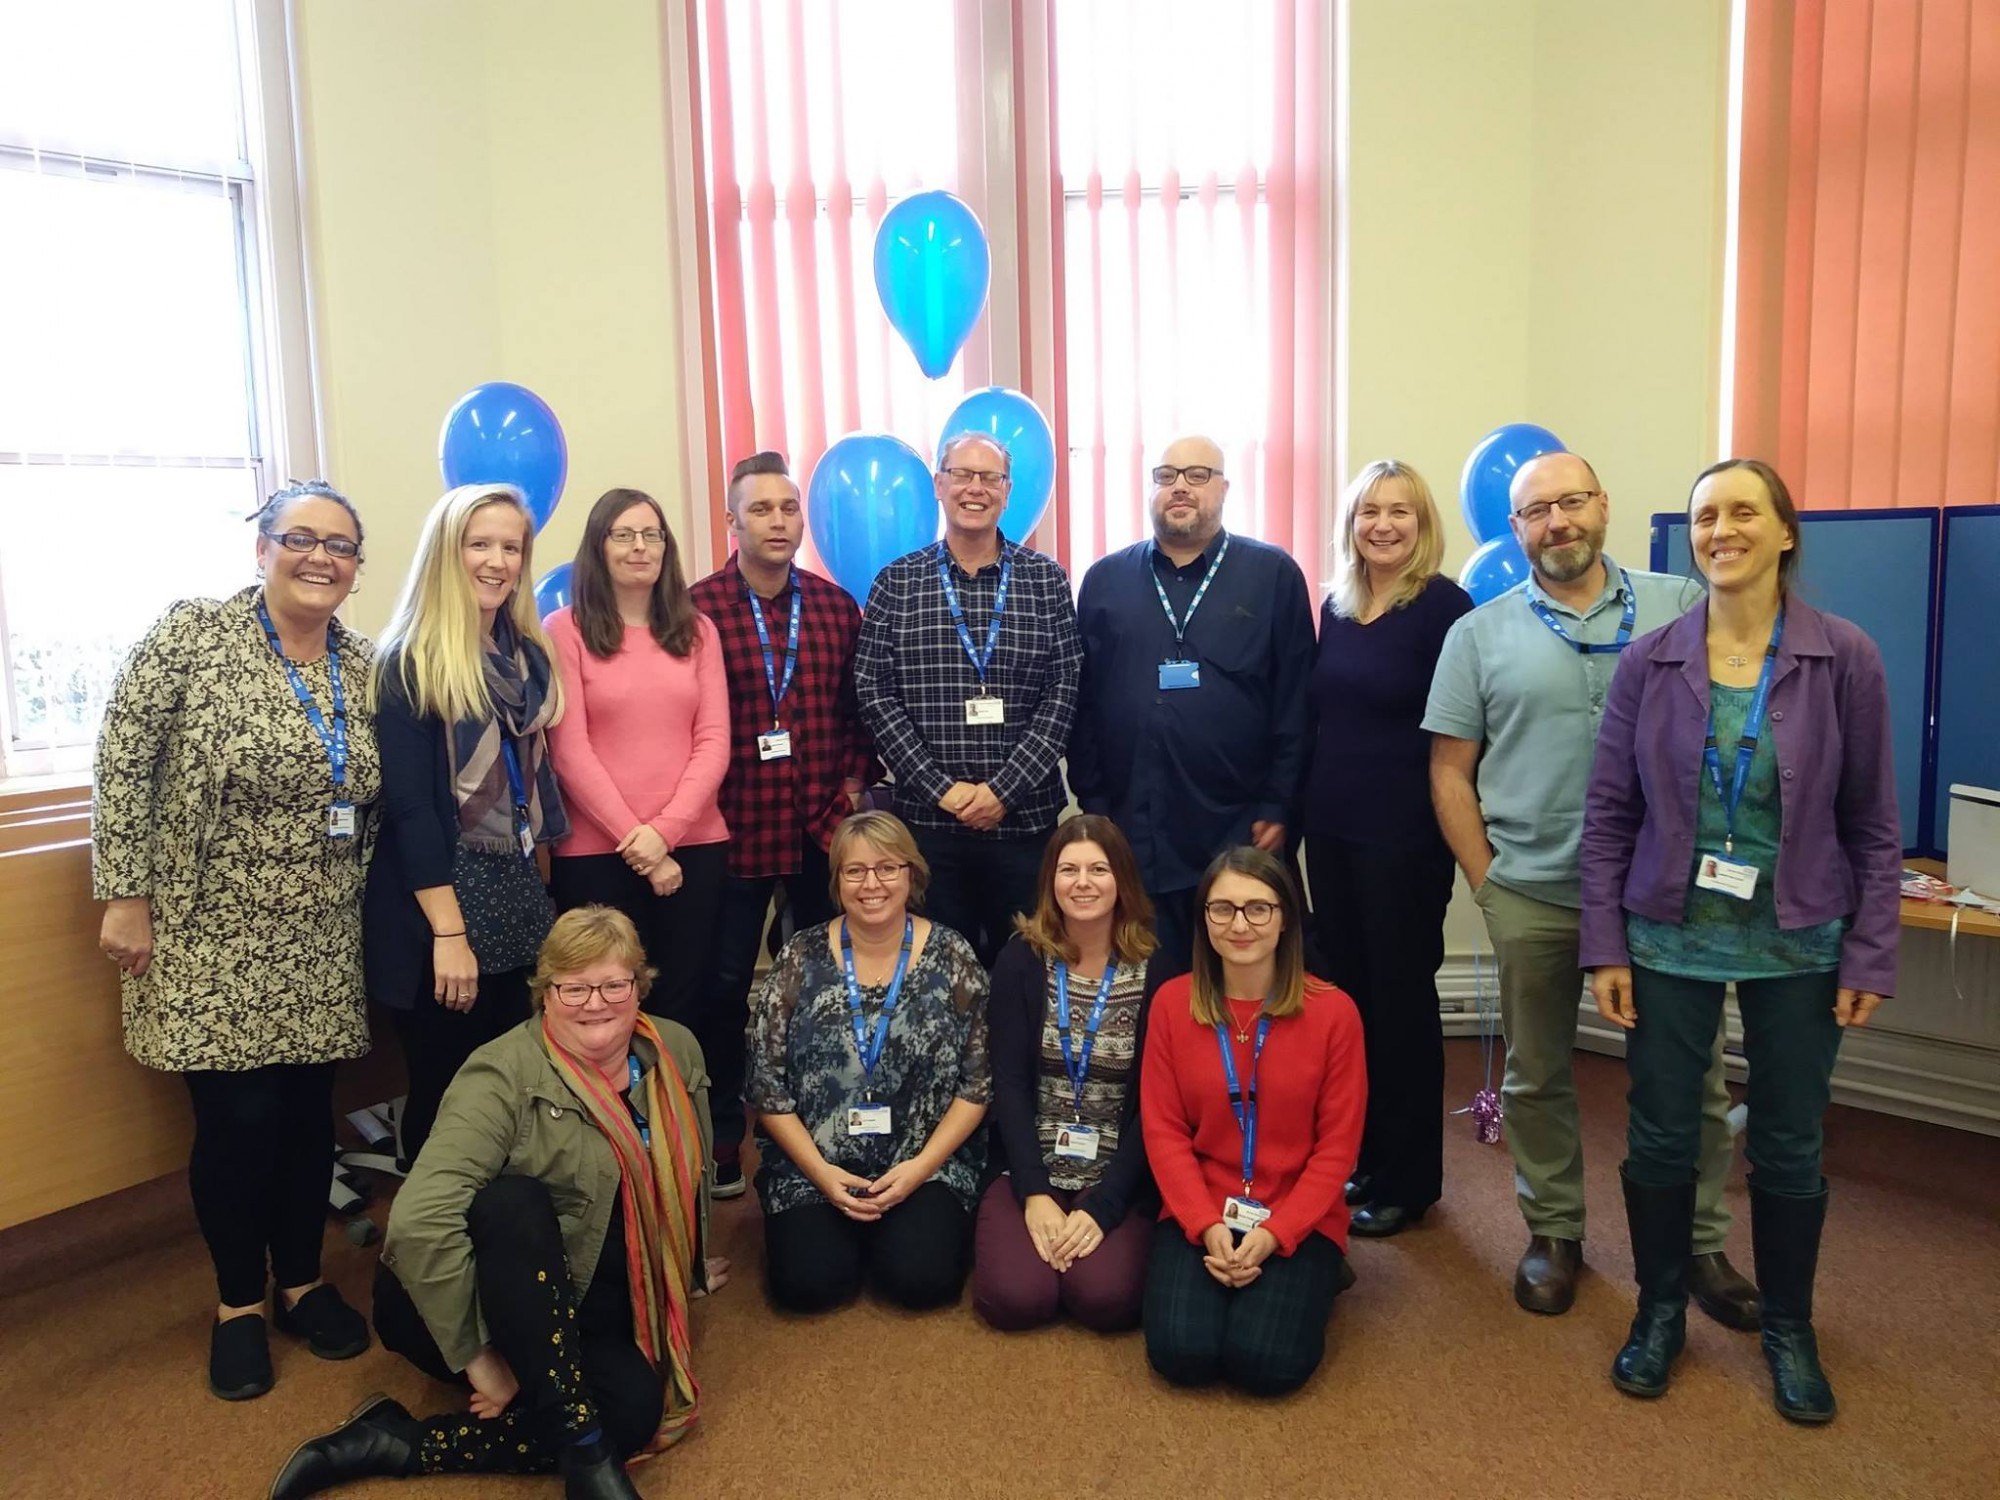 Workways to expand Supported Employment service across Devon